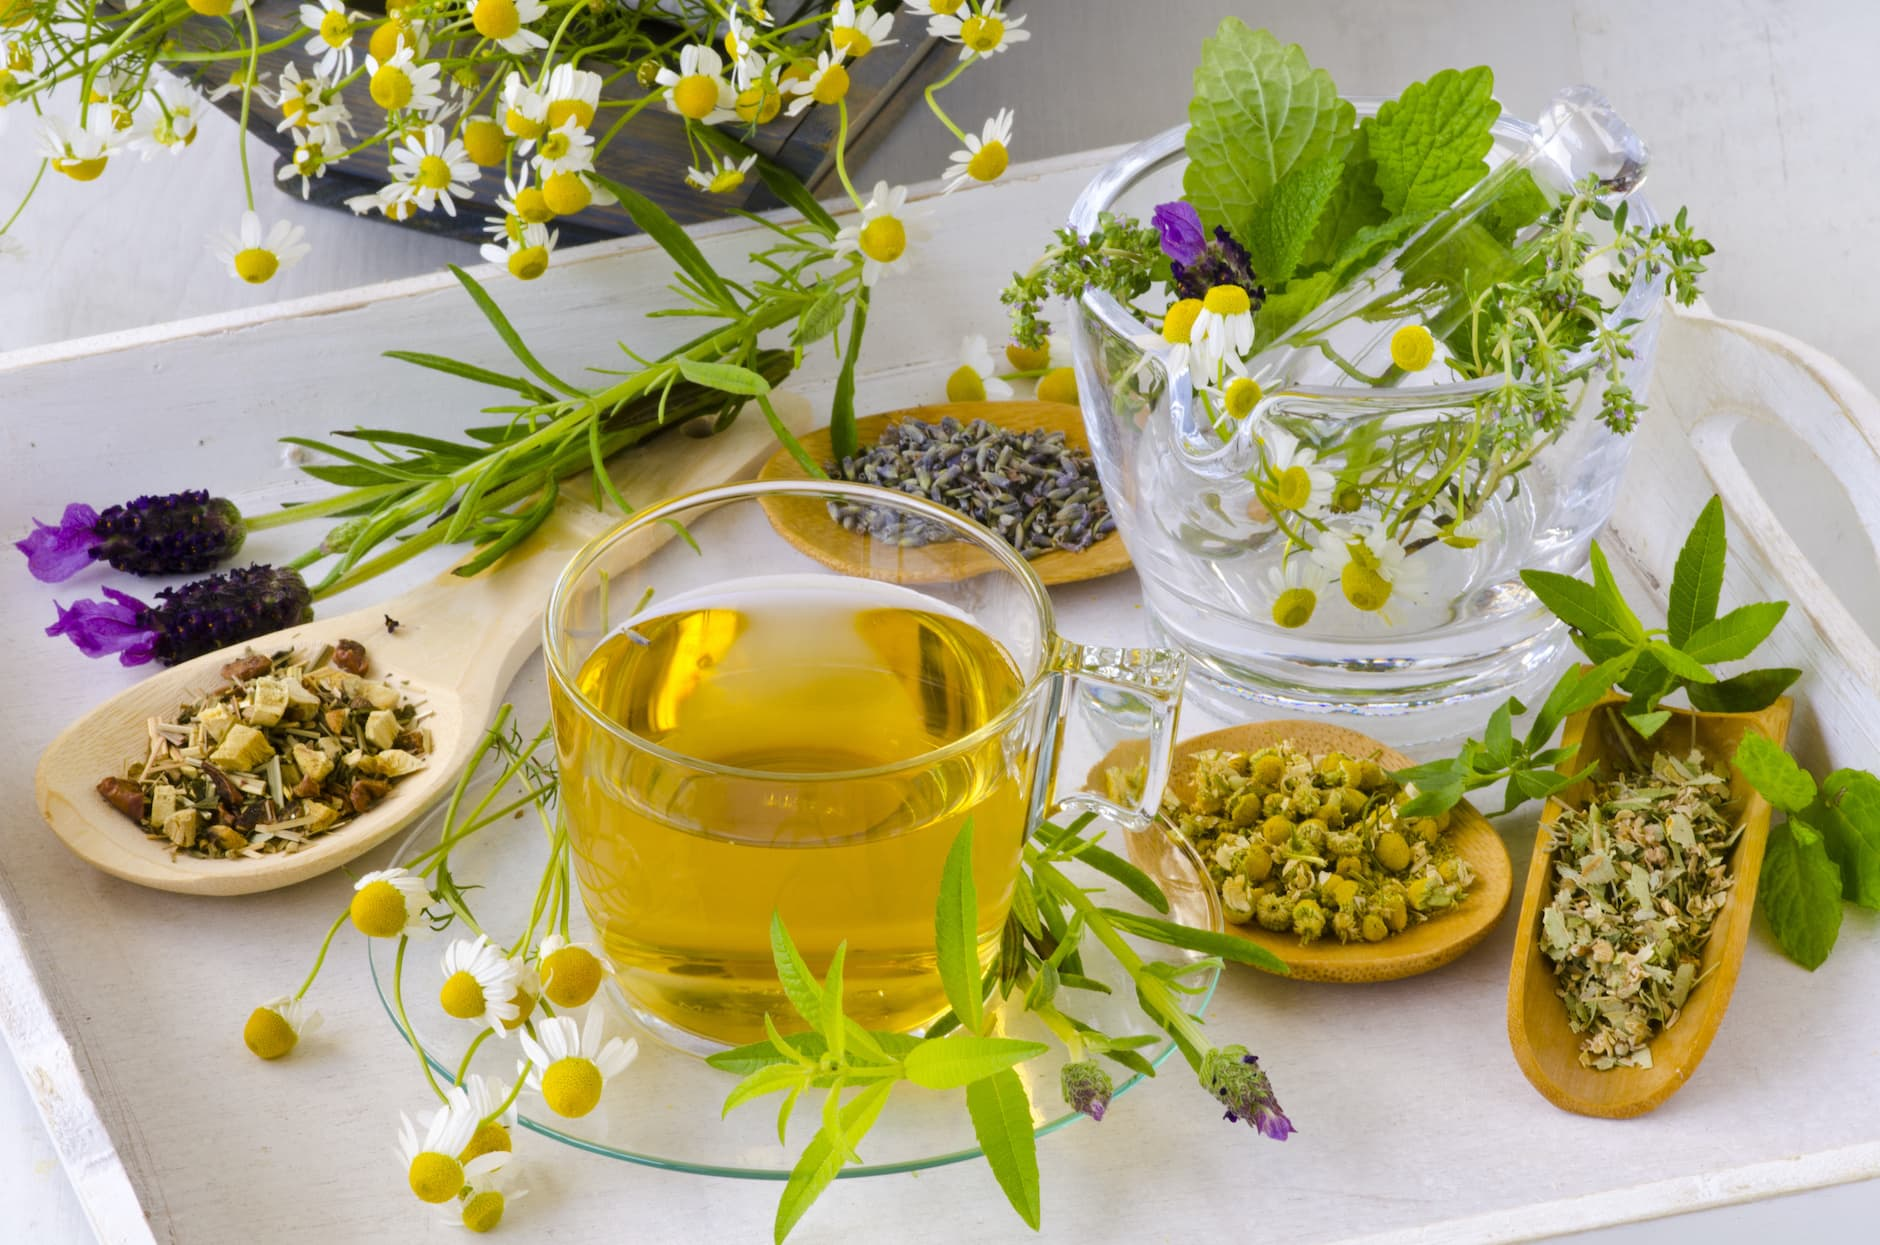 Plant A Tea Garden To Grow Your Own Herbal Teas!image preview